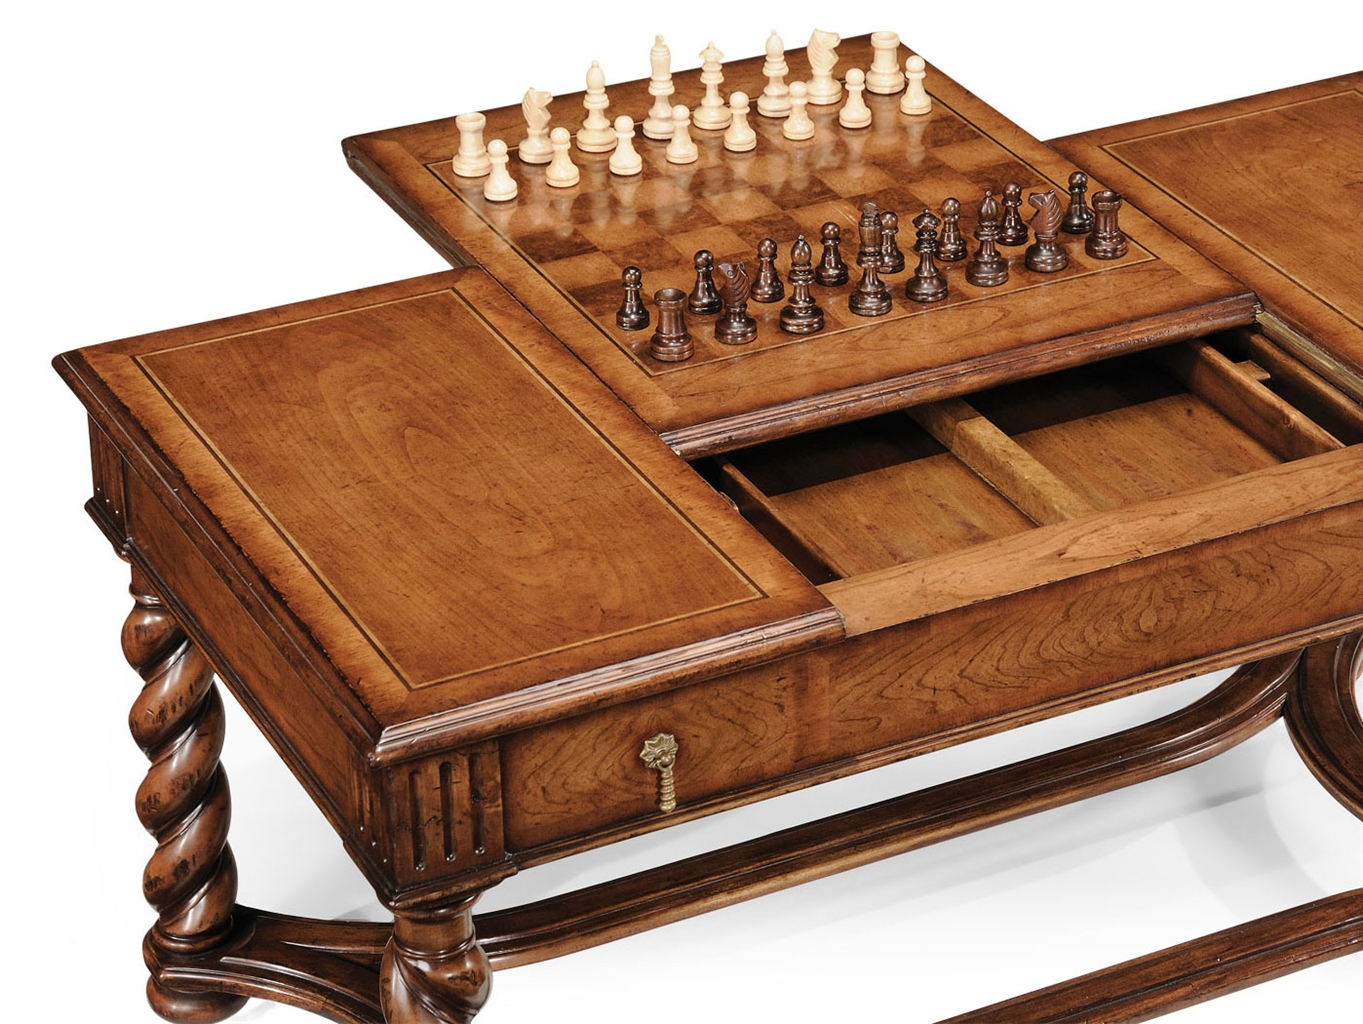 Walnut Parquetry Coffee Table with Reversible Chess Board-06